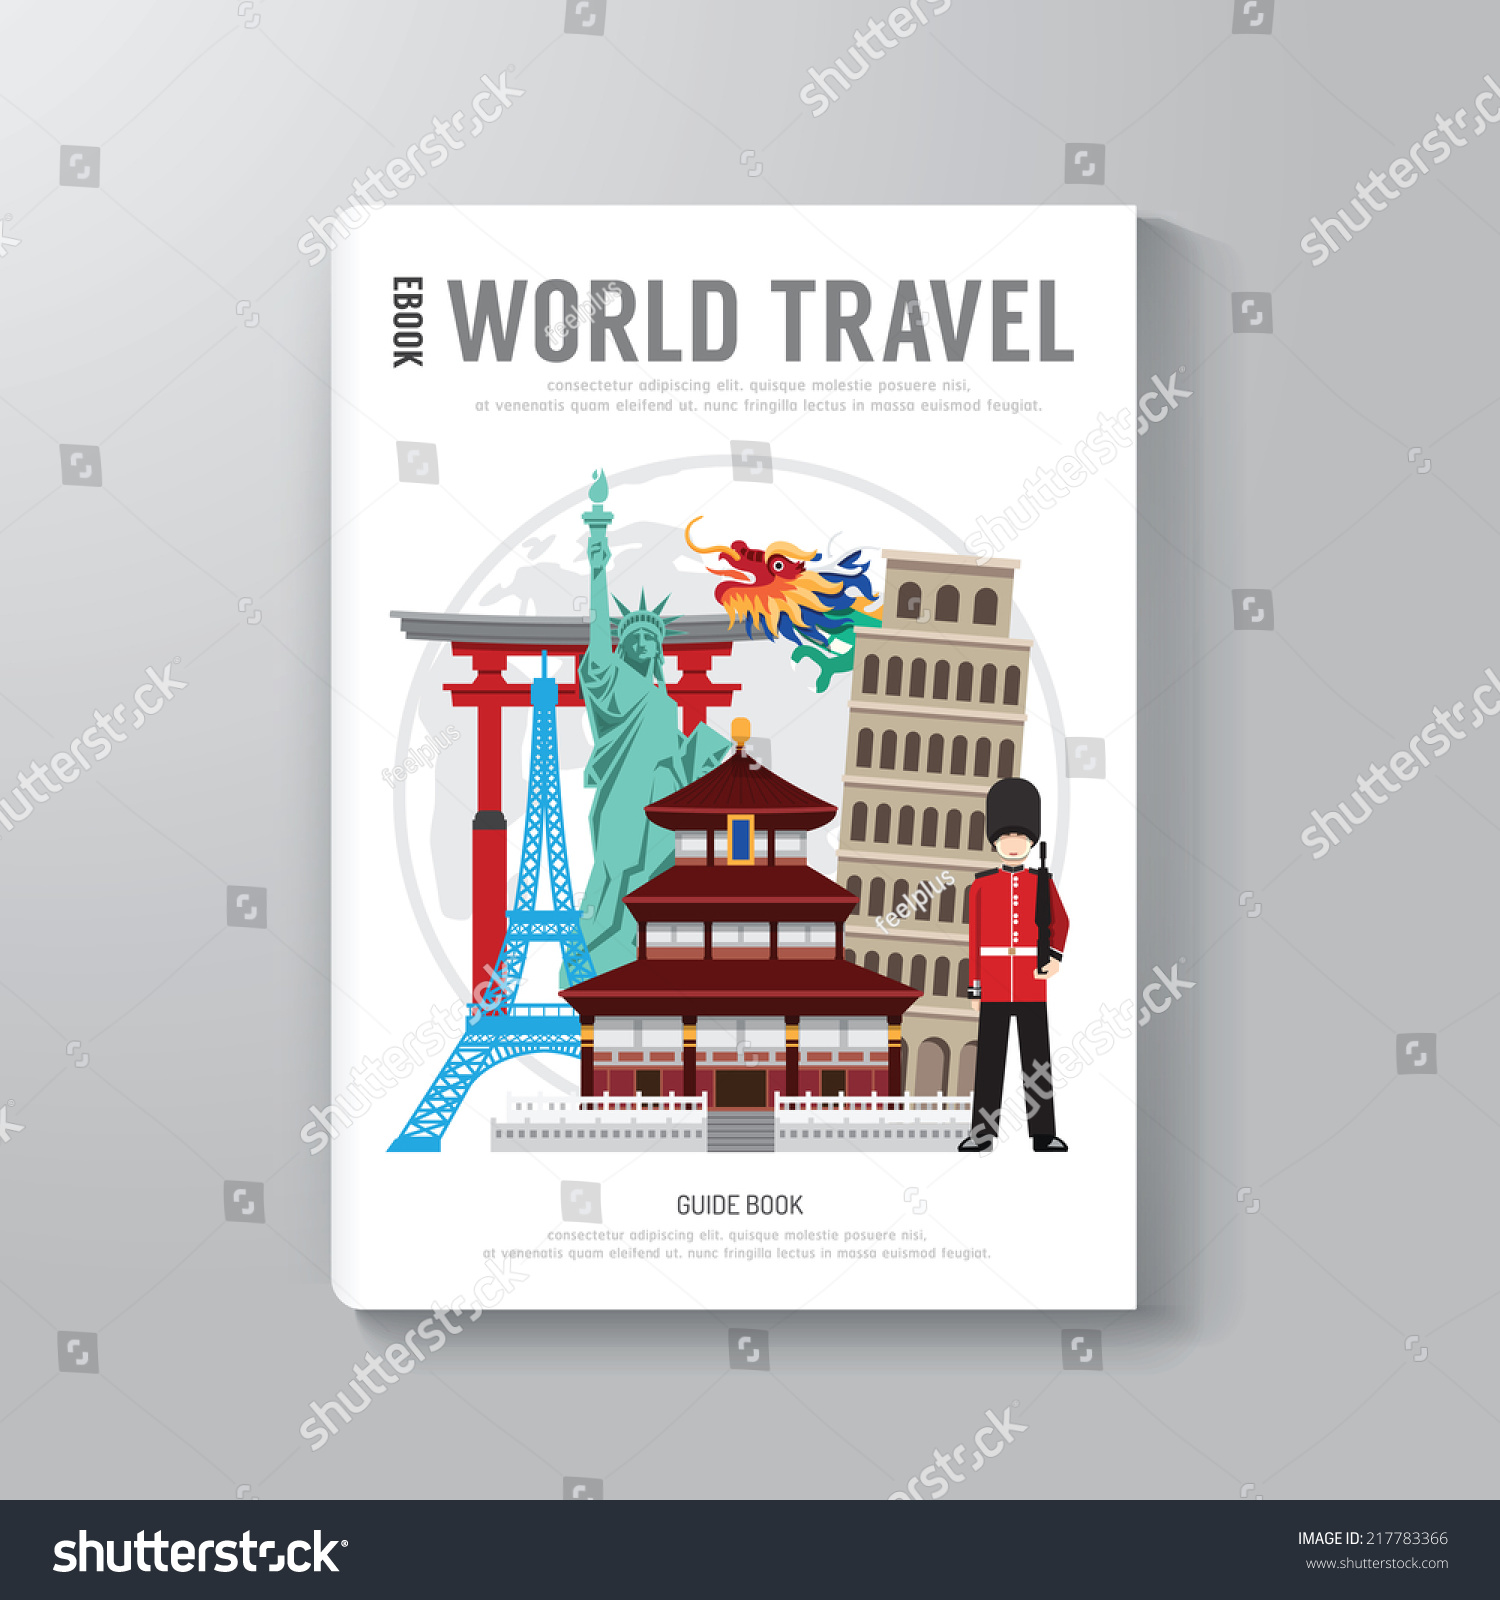 Book Cover Illustration Contract ~ World travel business book template design stock vector